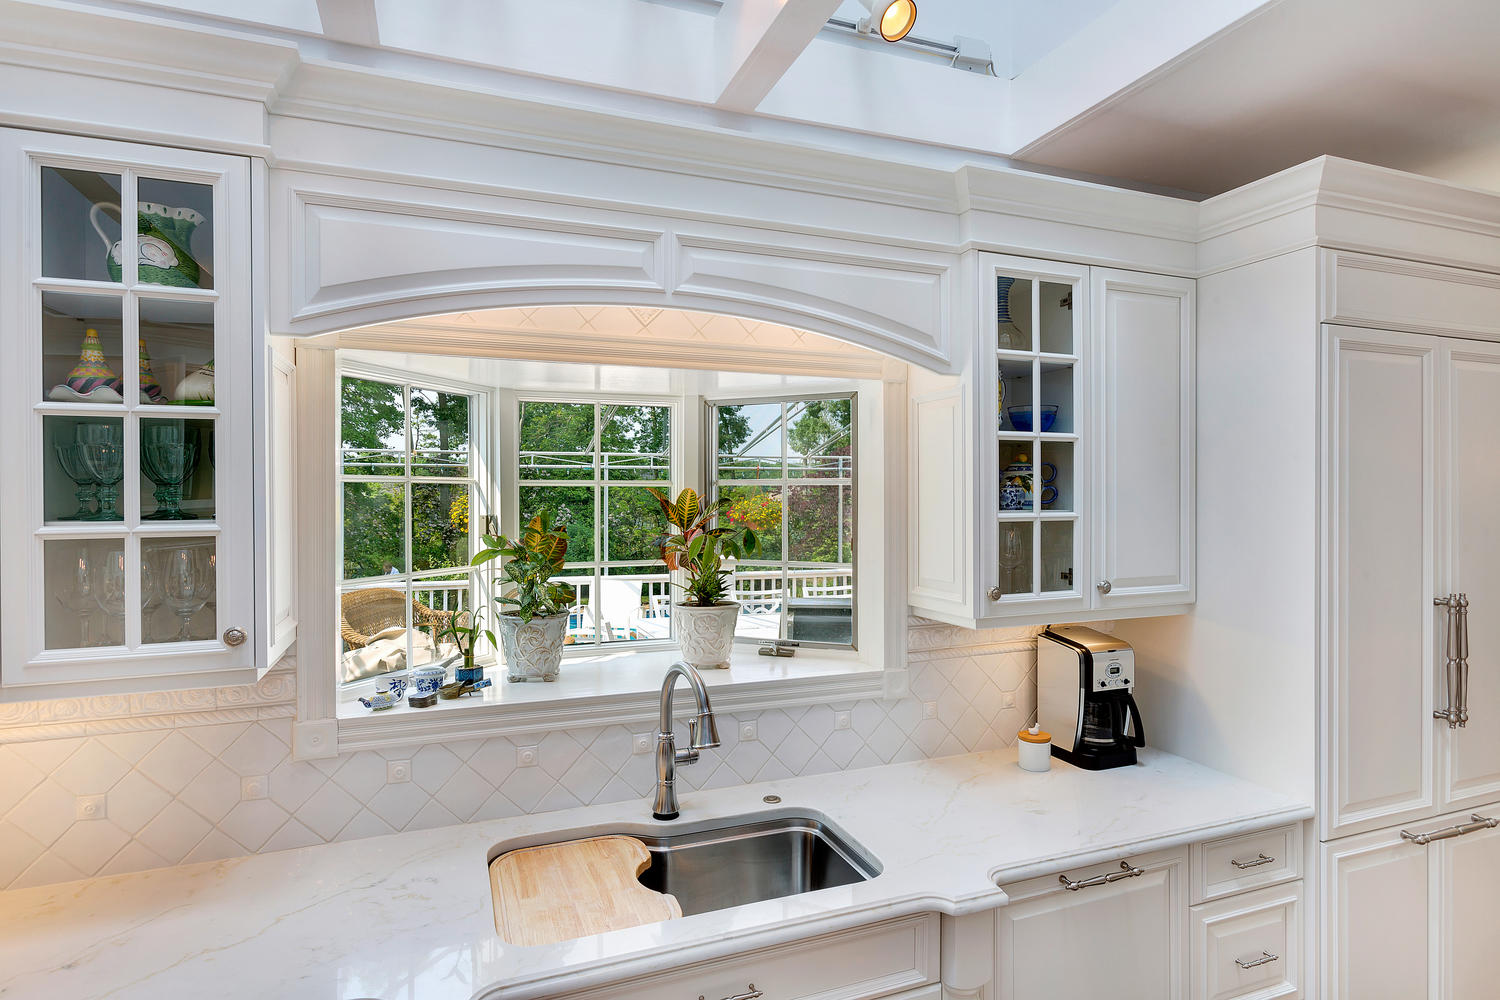 raised arch valance - Luxury White Kitchens